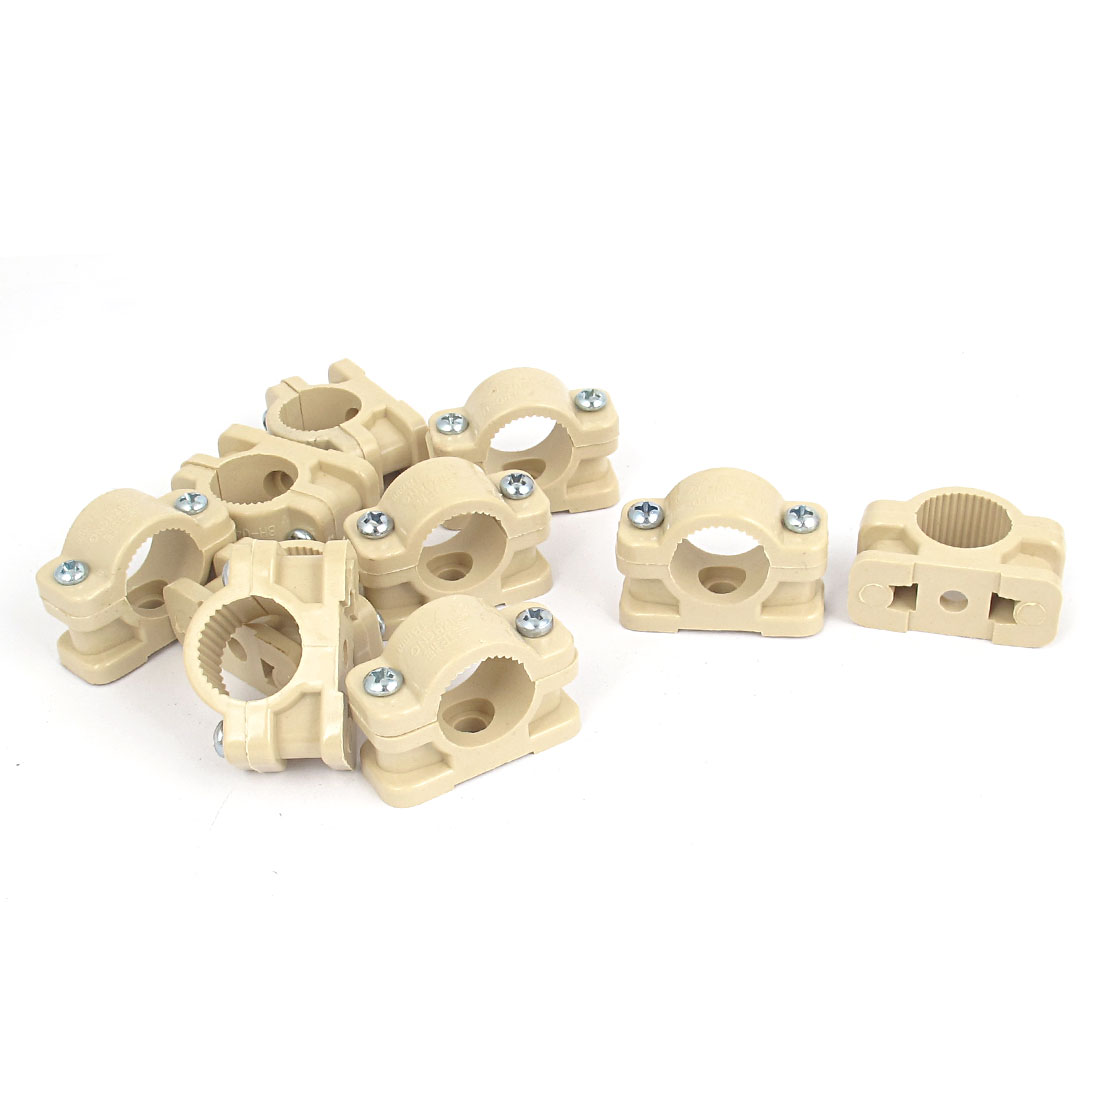 18mm Dia Wall Mounted Plastic Pipe Clip Clamp Fastener Khaki 10pcs